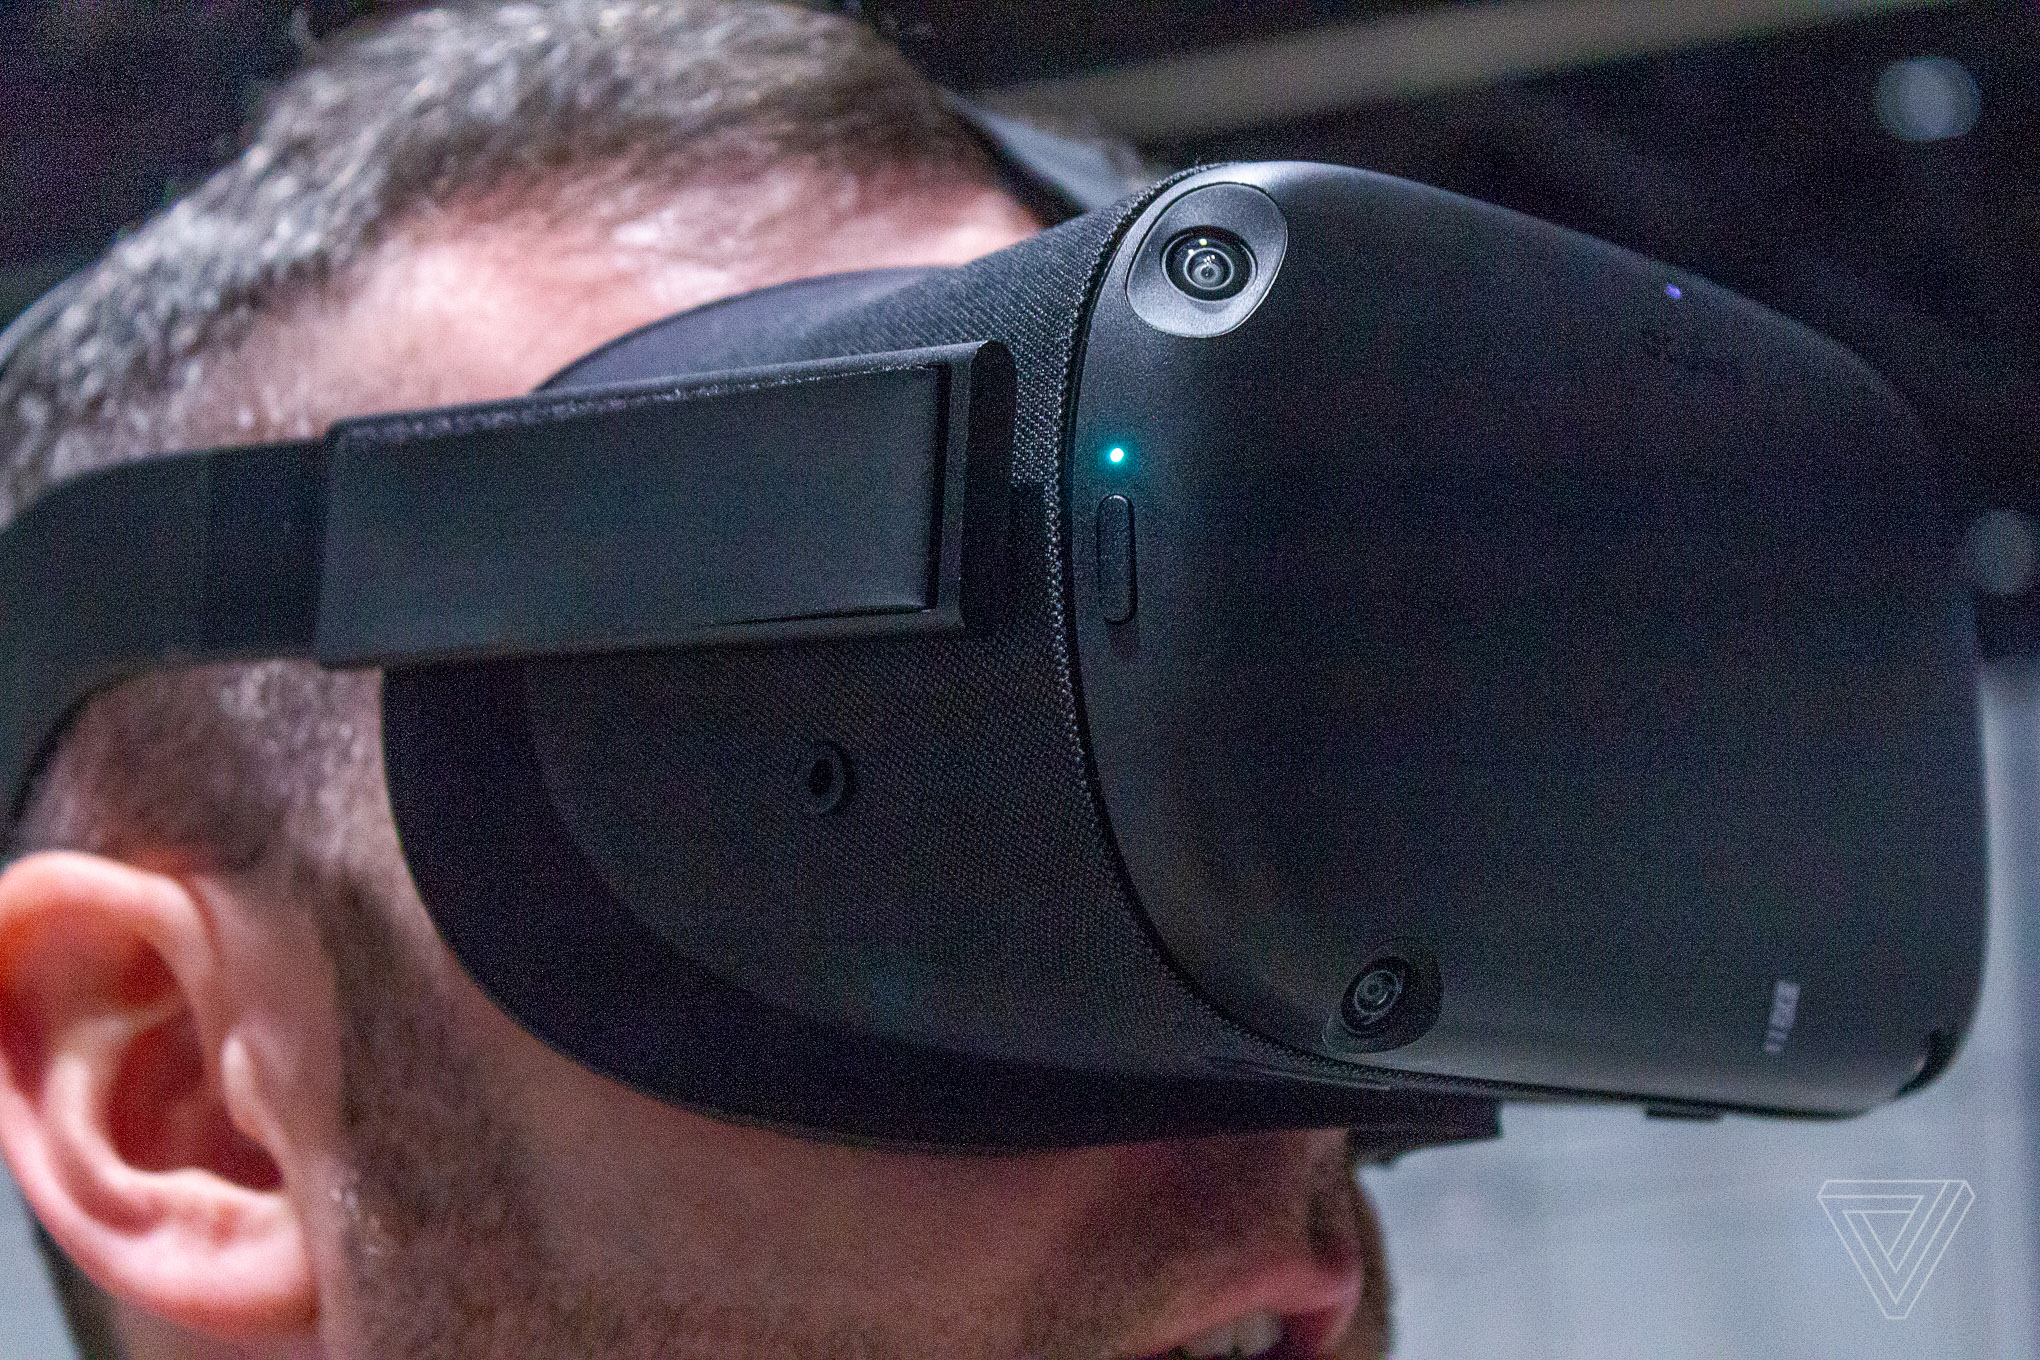 Oculus Quest put us in an 'arena-scale' Wild West shootout, and it